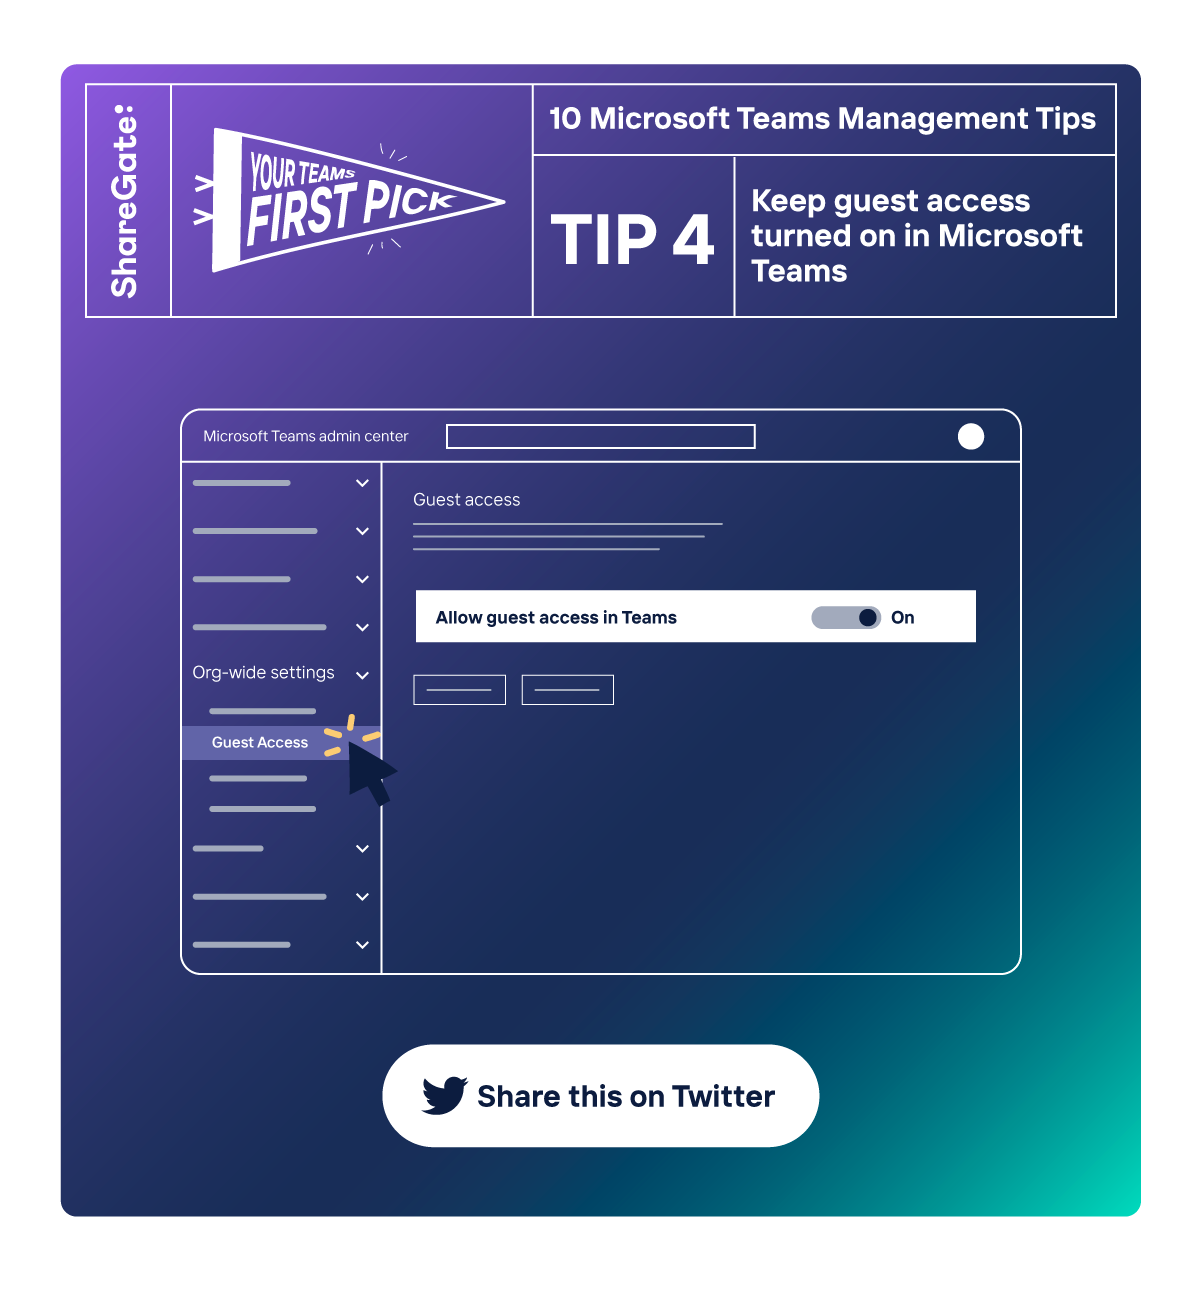 Illustrated infographic showing tip #4: Keep guest access turned on in Microsoft Teams